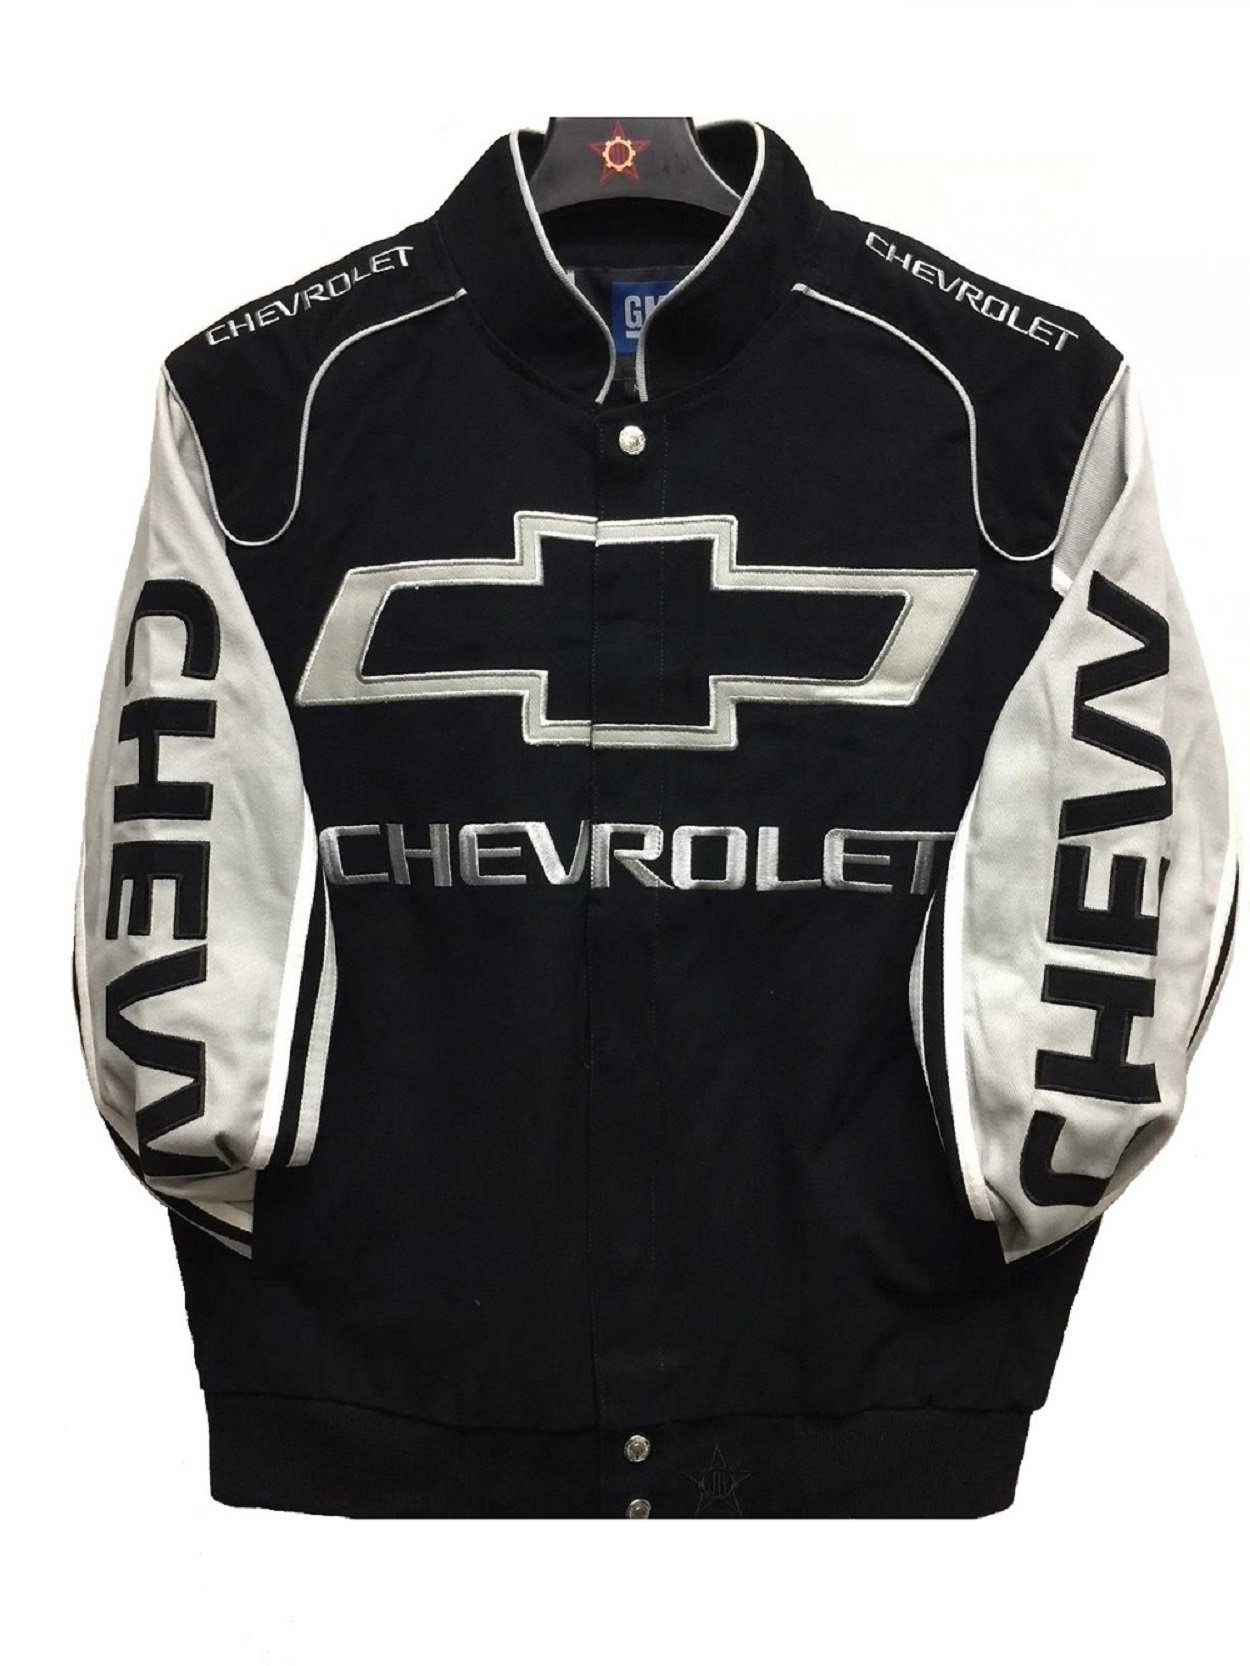 2017 Chevy Racing Cotton Jacket Jh Design Size Large